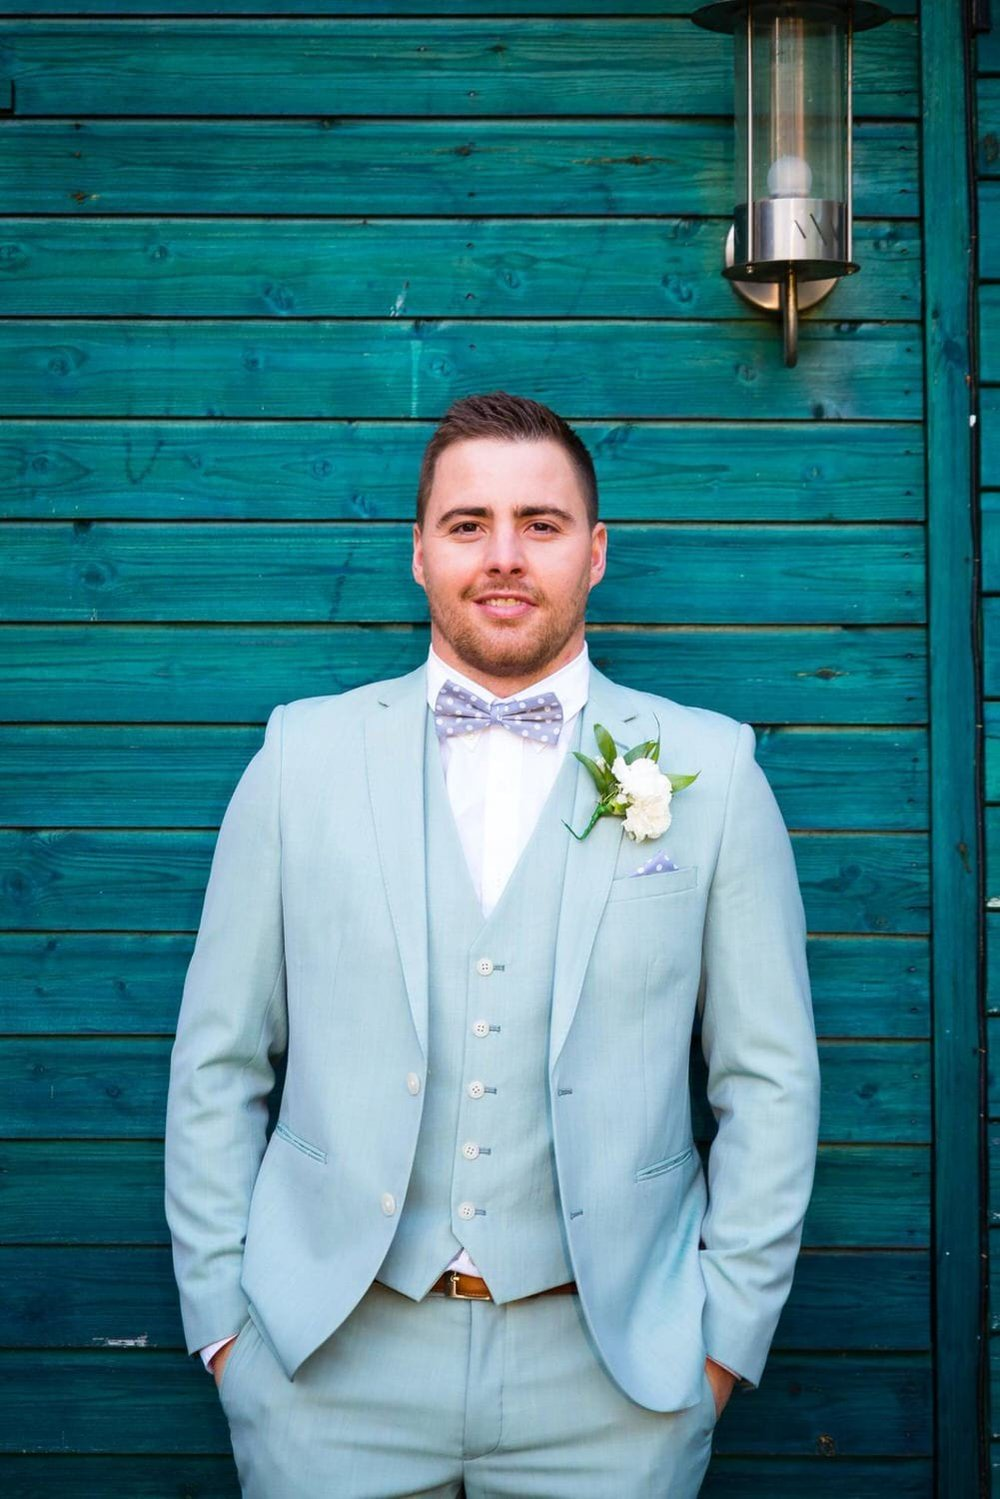 photo of the groom in teal suit